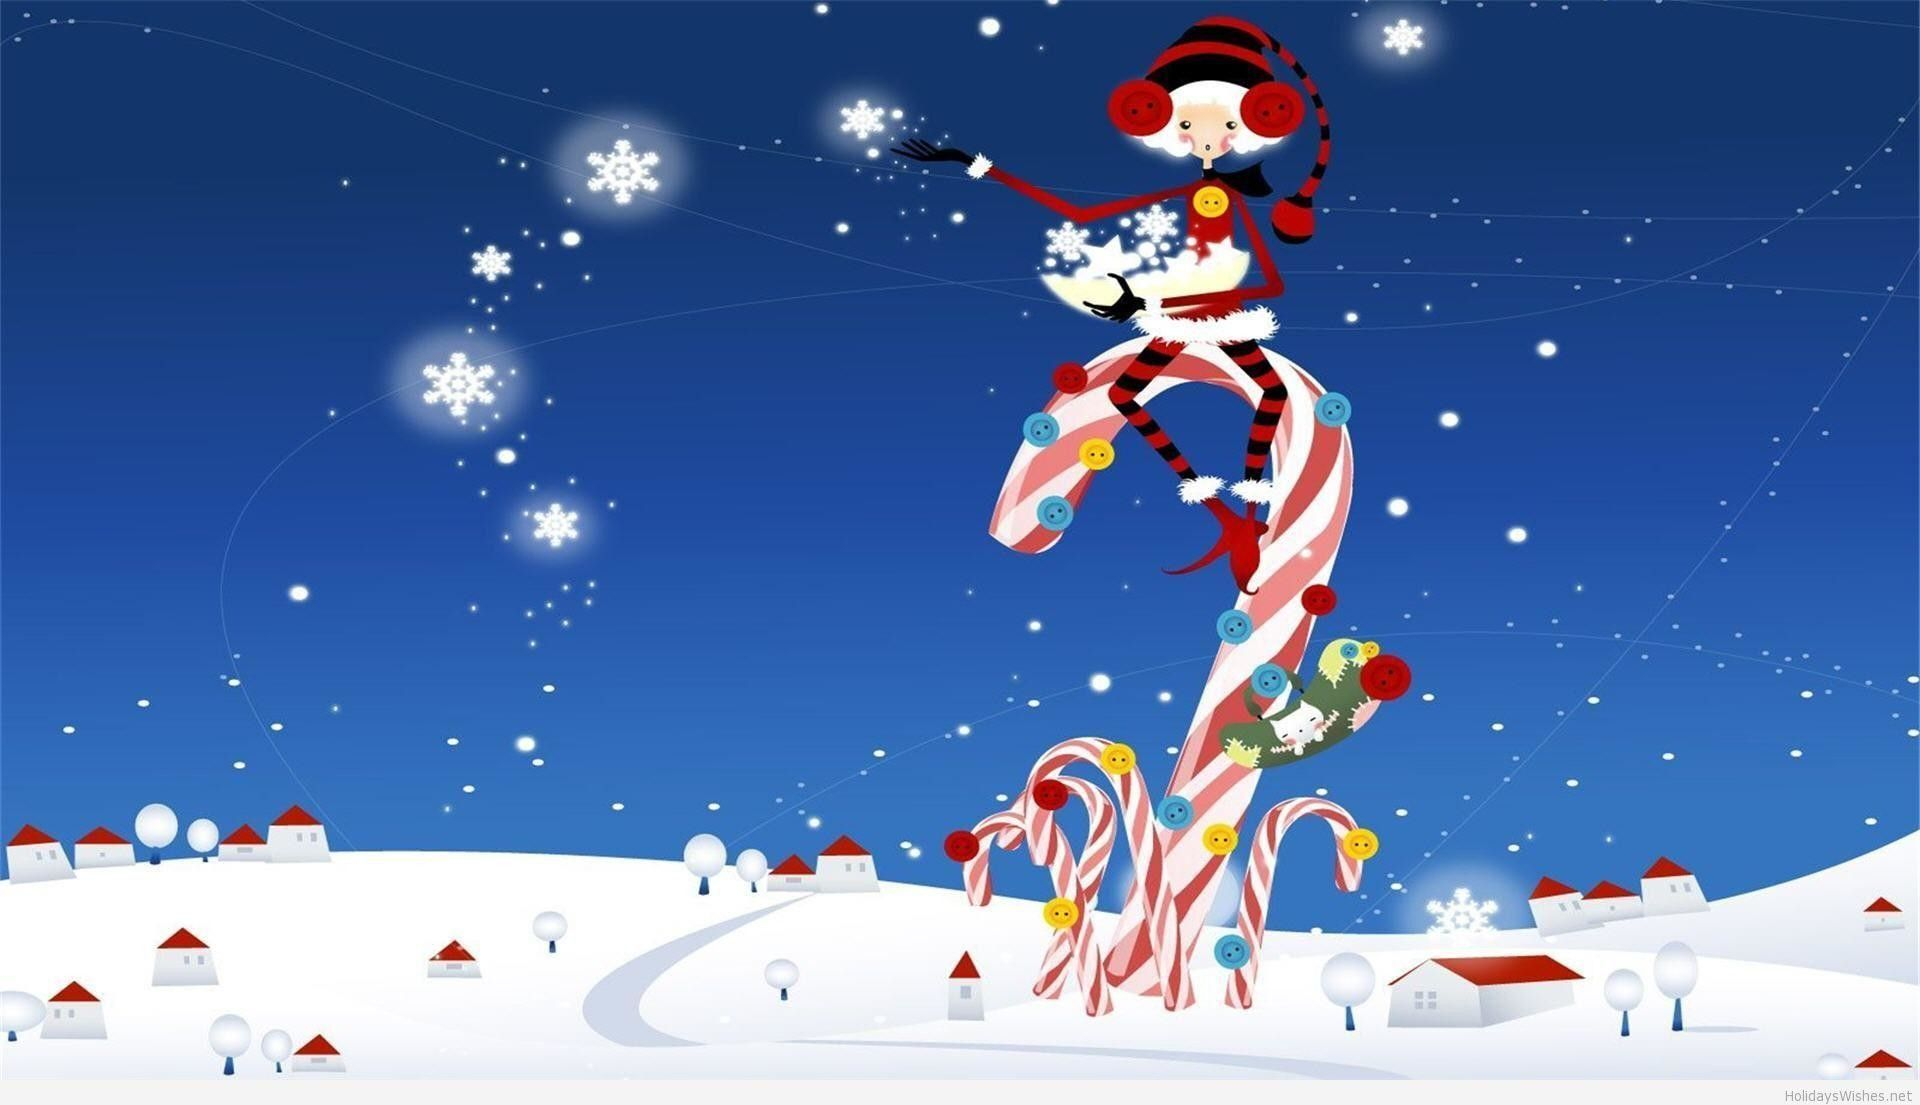 Peanuts Christmas Wallpapers - Top Free